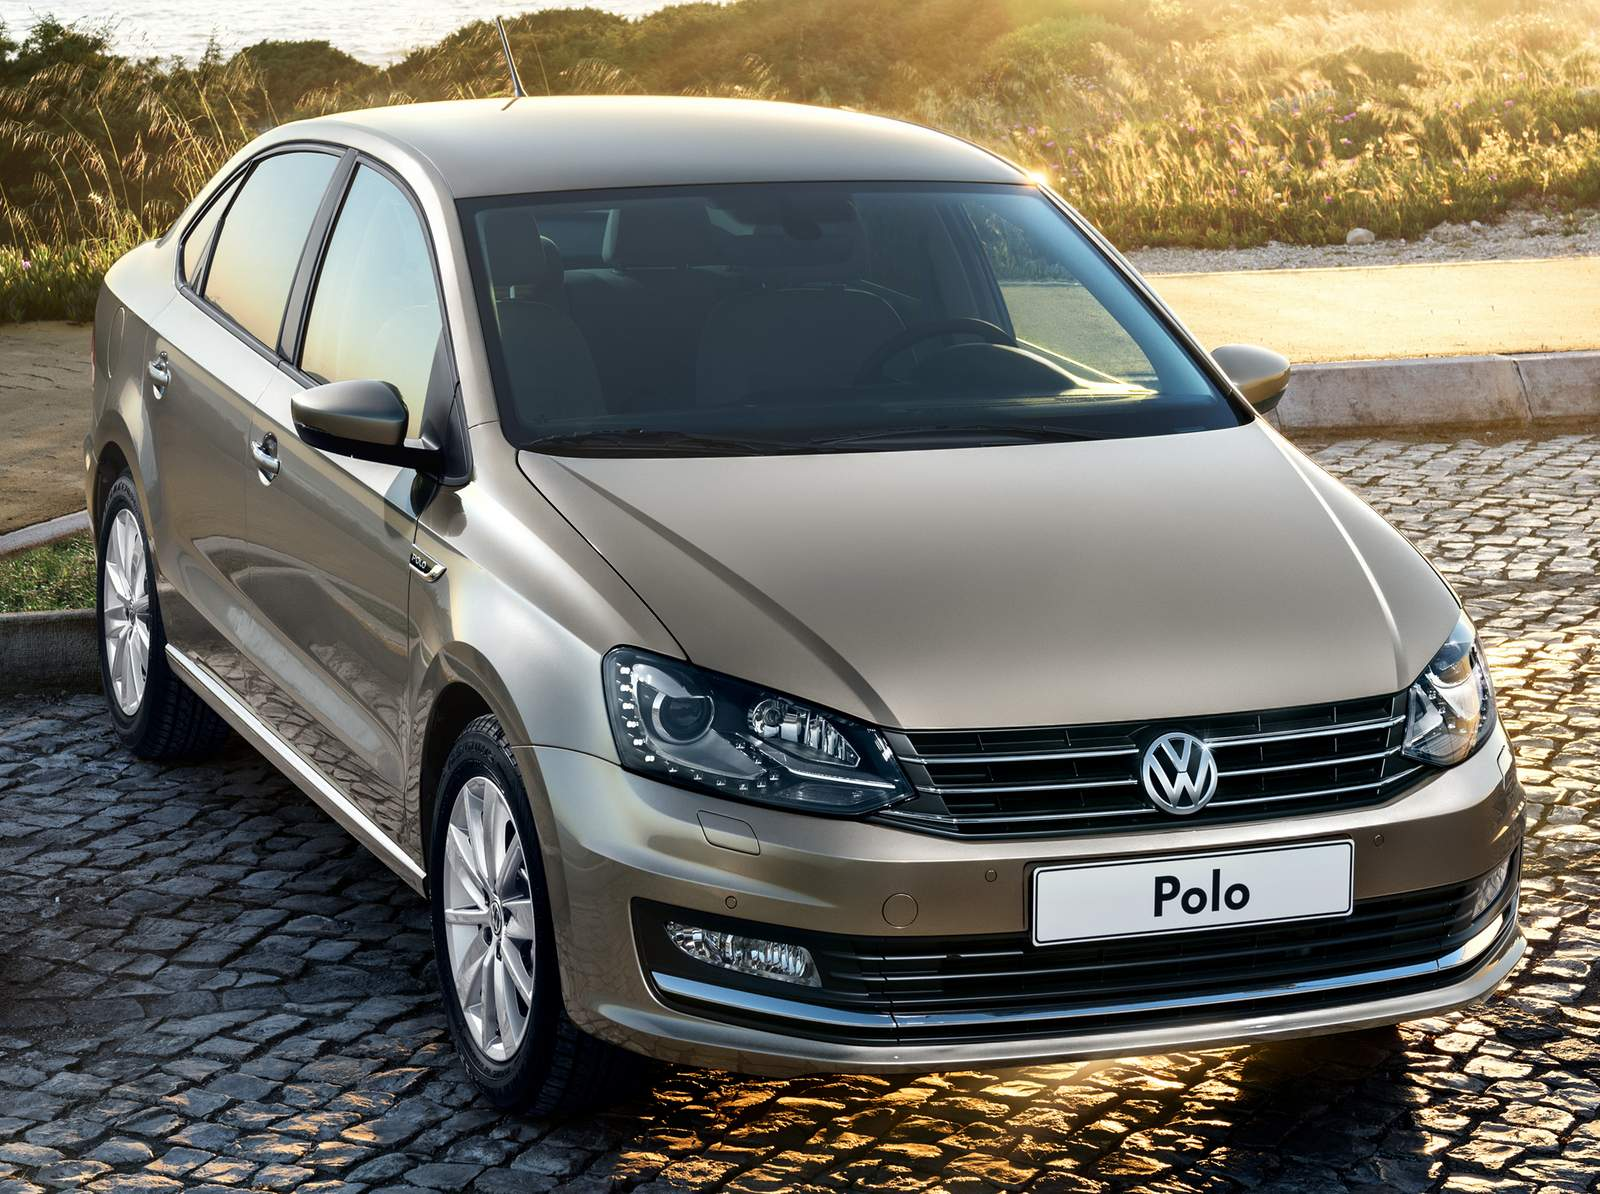 vw polo sedan 2016 chega com facelift na europa fotos car blog br. Black Bedroom Furniture Sets. Home Design Ideas